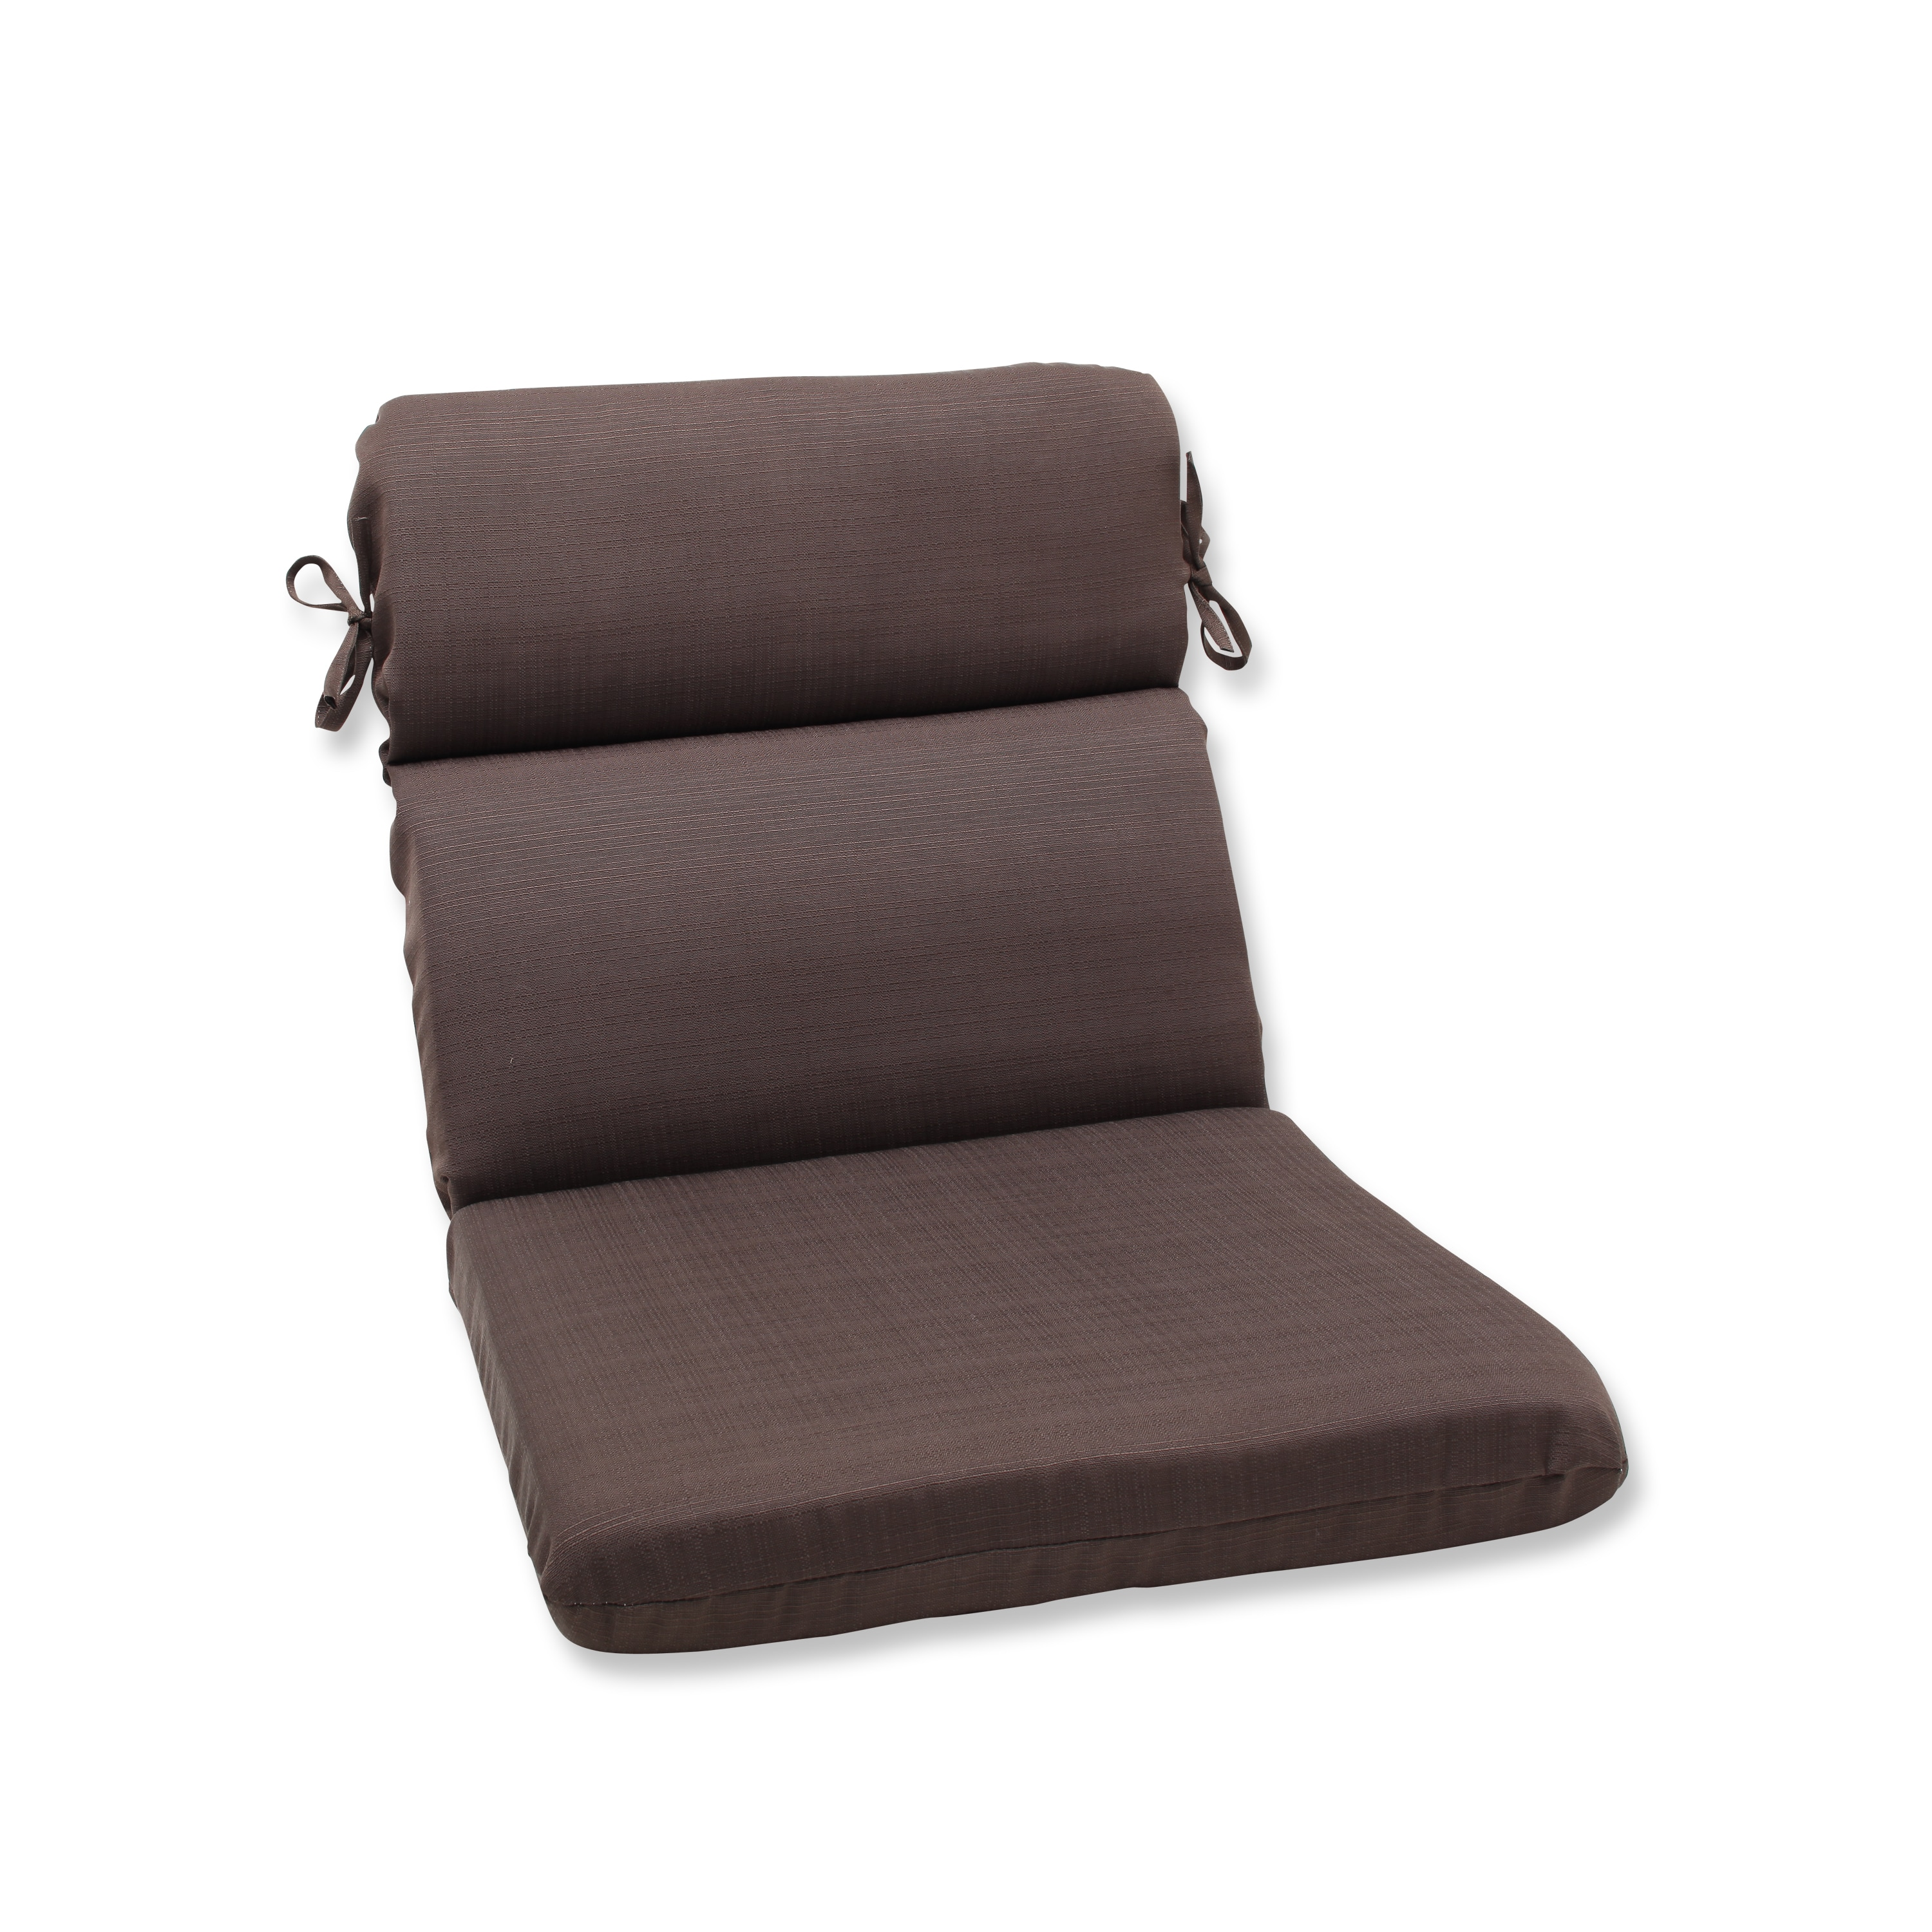 Round Corner Chair Pillow Perfect Outdoor Brown Rounded Corners Chair Cushion